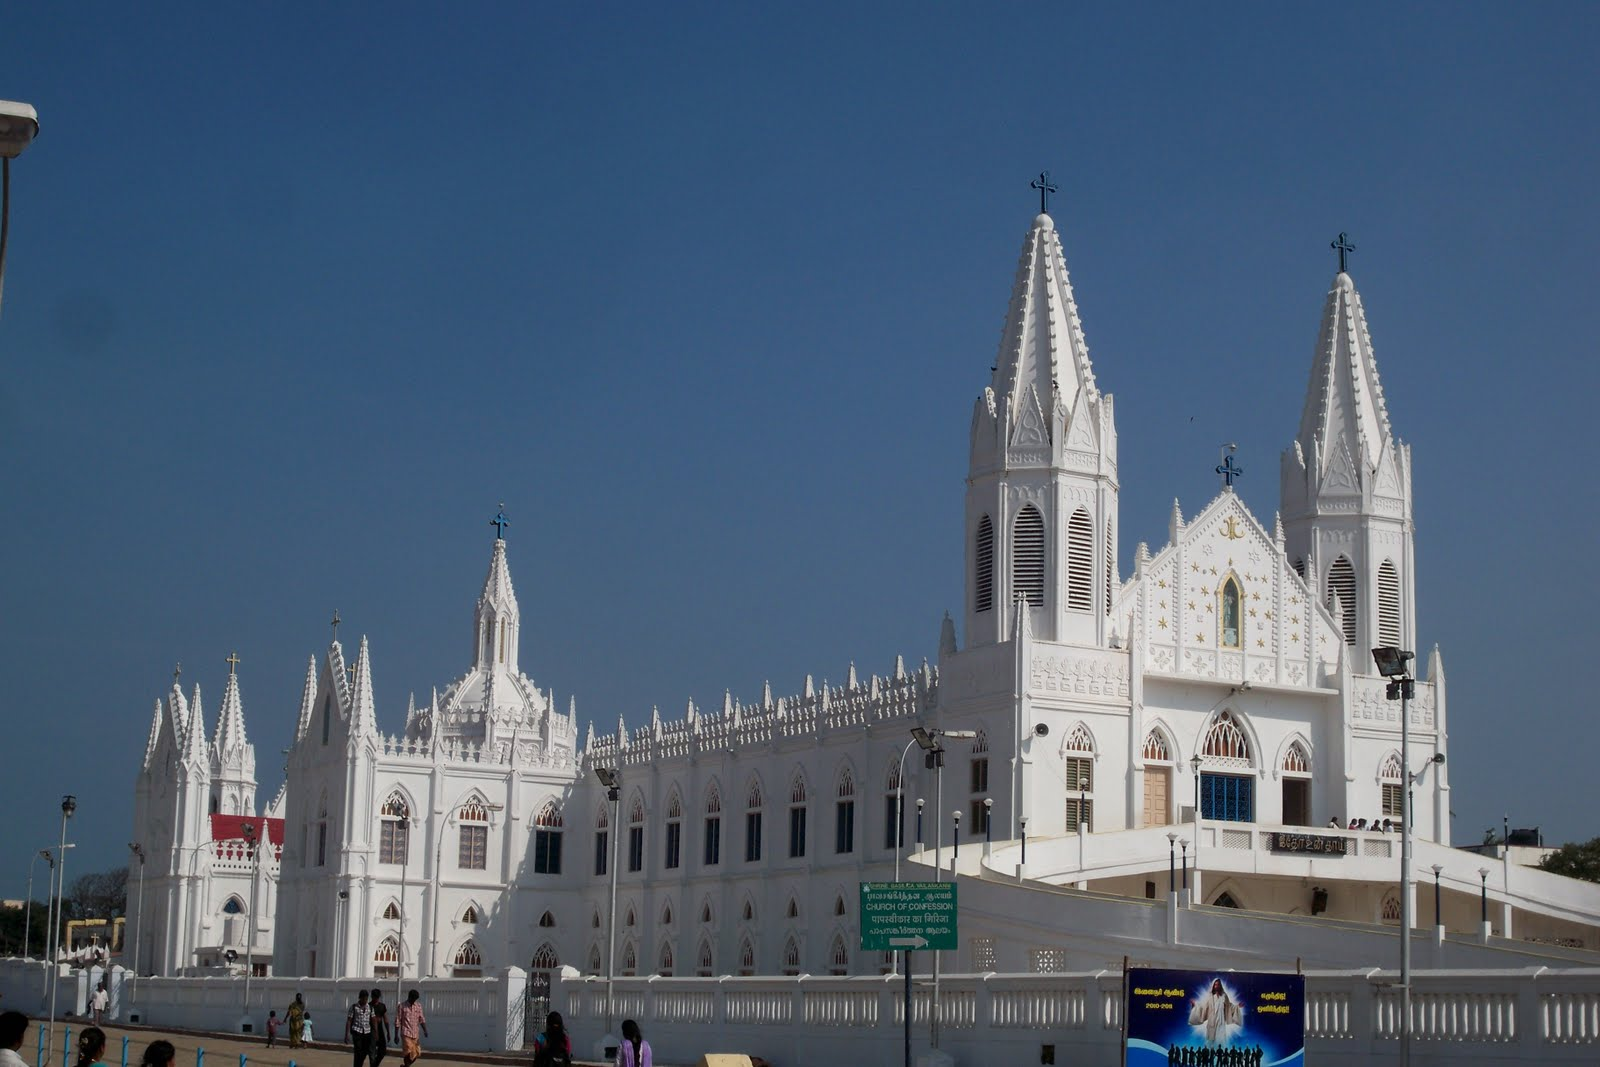 Vailankanni India  city photo : Vailankanni Church, Kerala | India Is | Pinterest | Kerala and ...